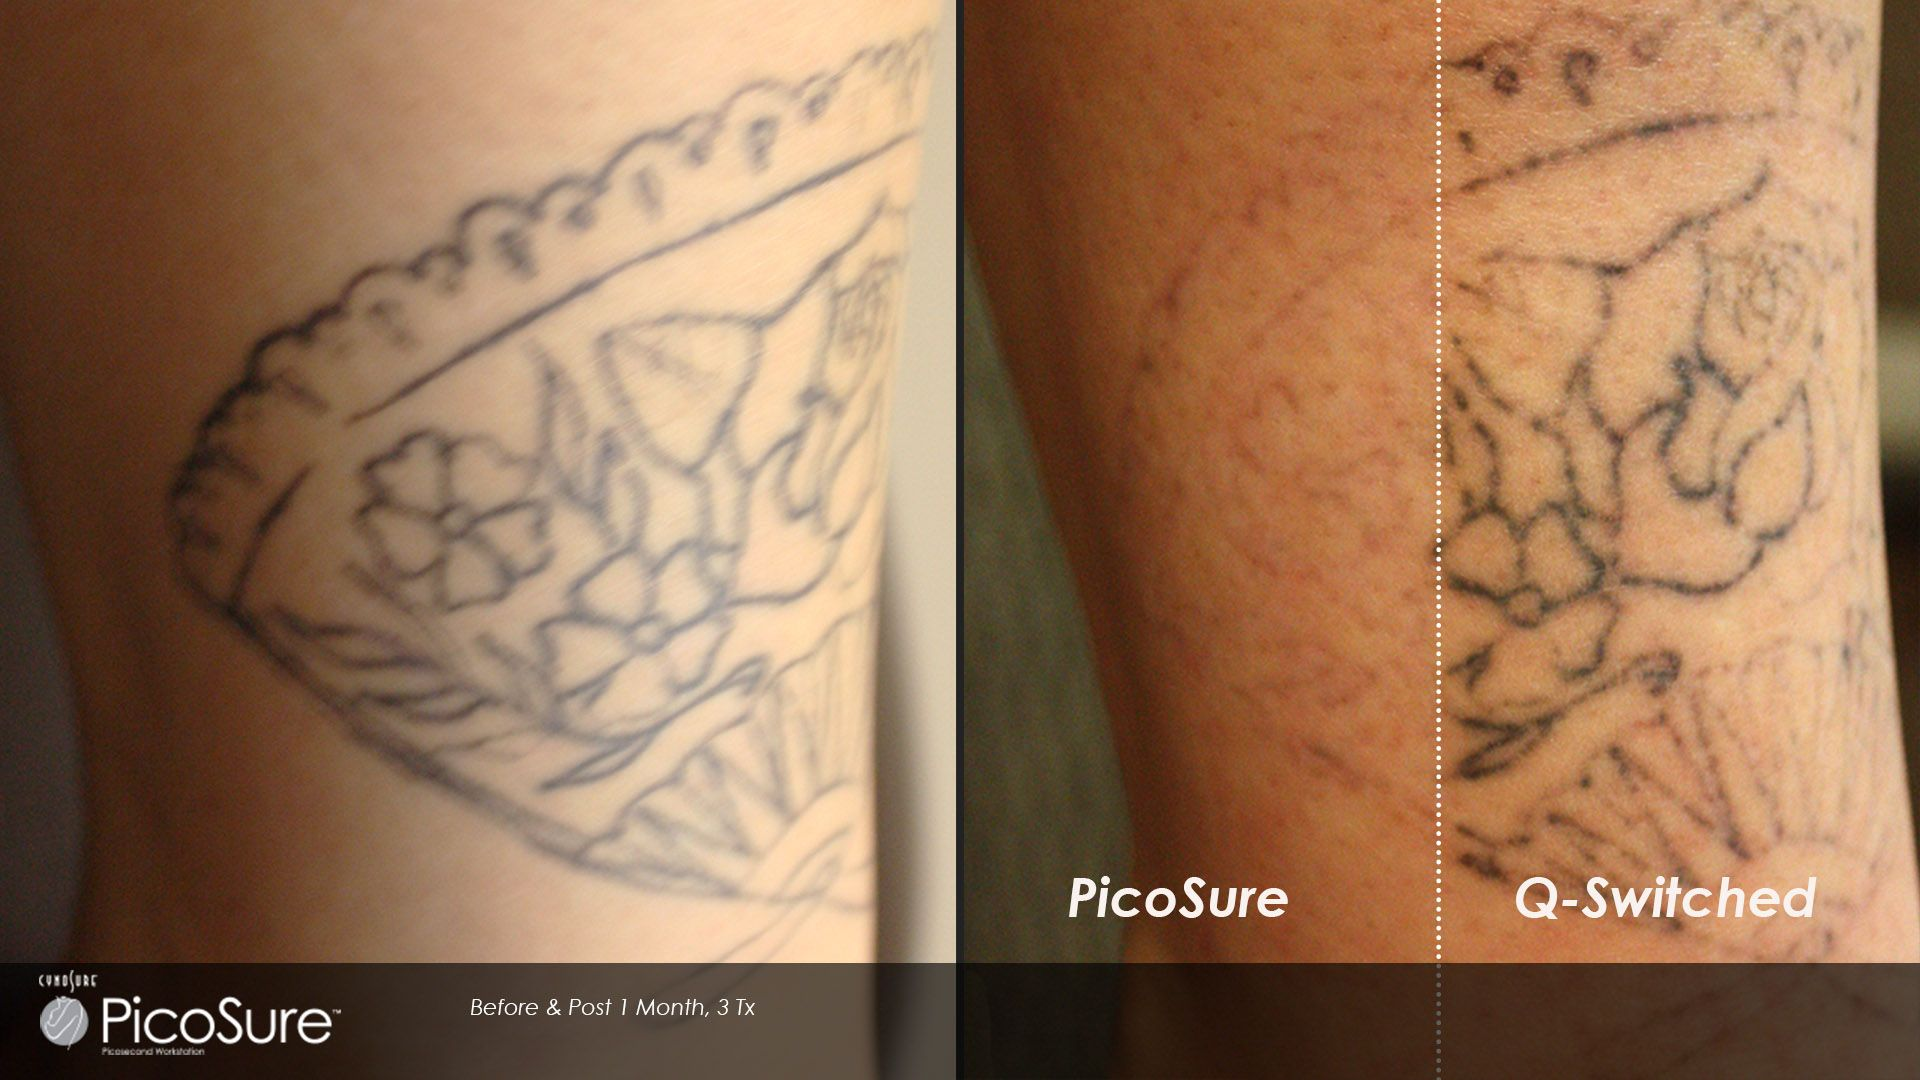 Call Carolina Laser Cosmetic Center In Winston Salem Nc To Undo Your Tattoo With Picosure Laser Tattoo Removal